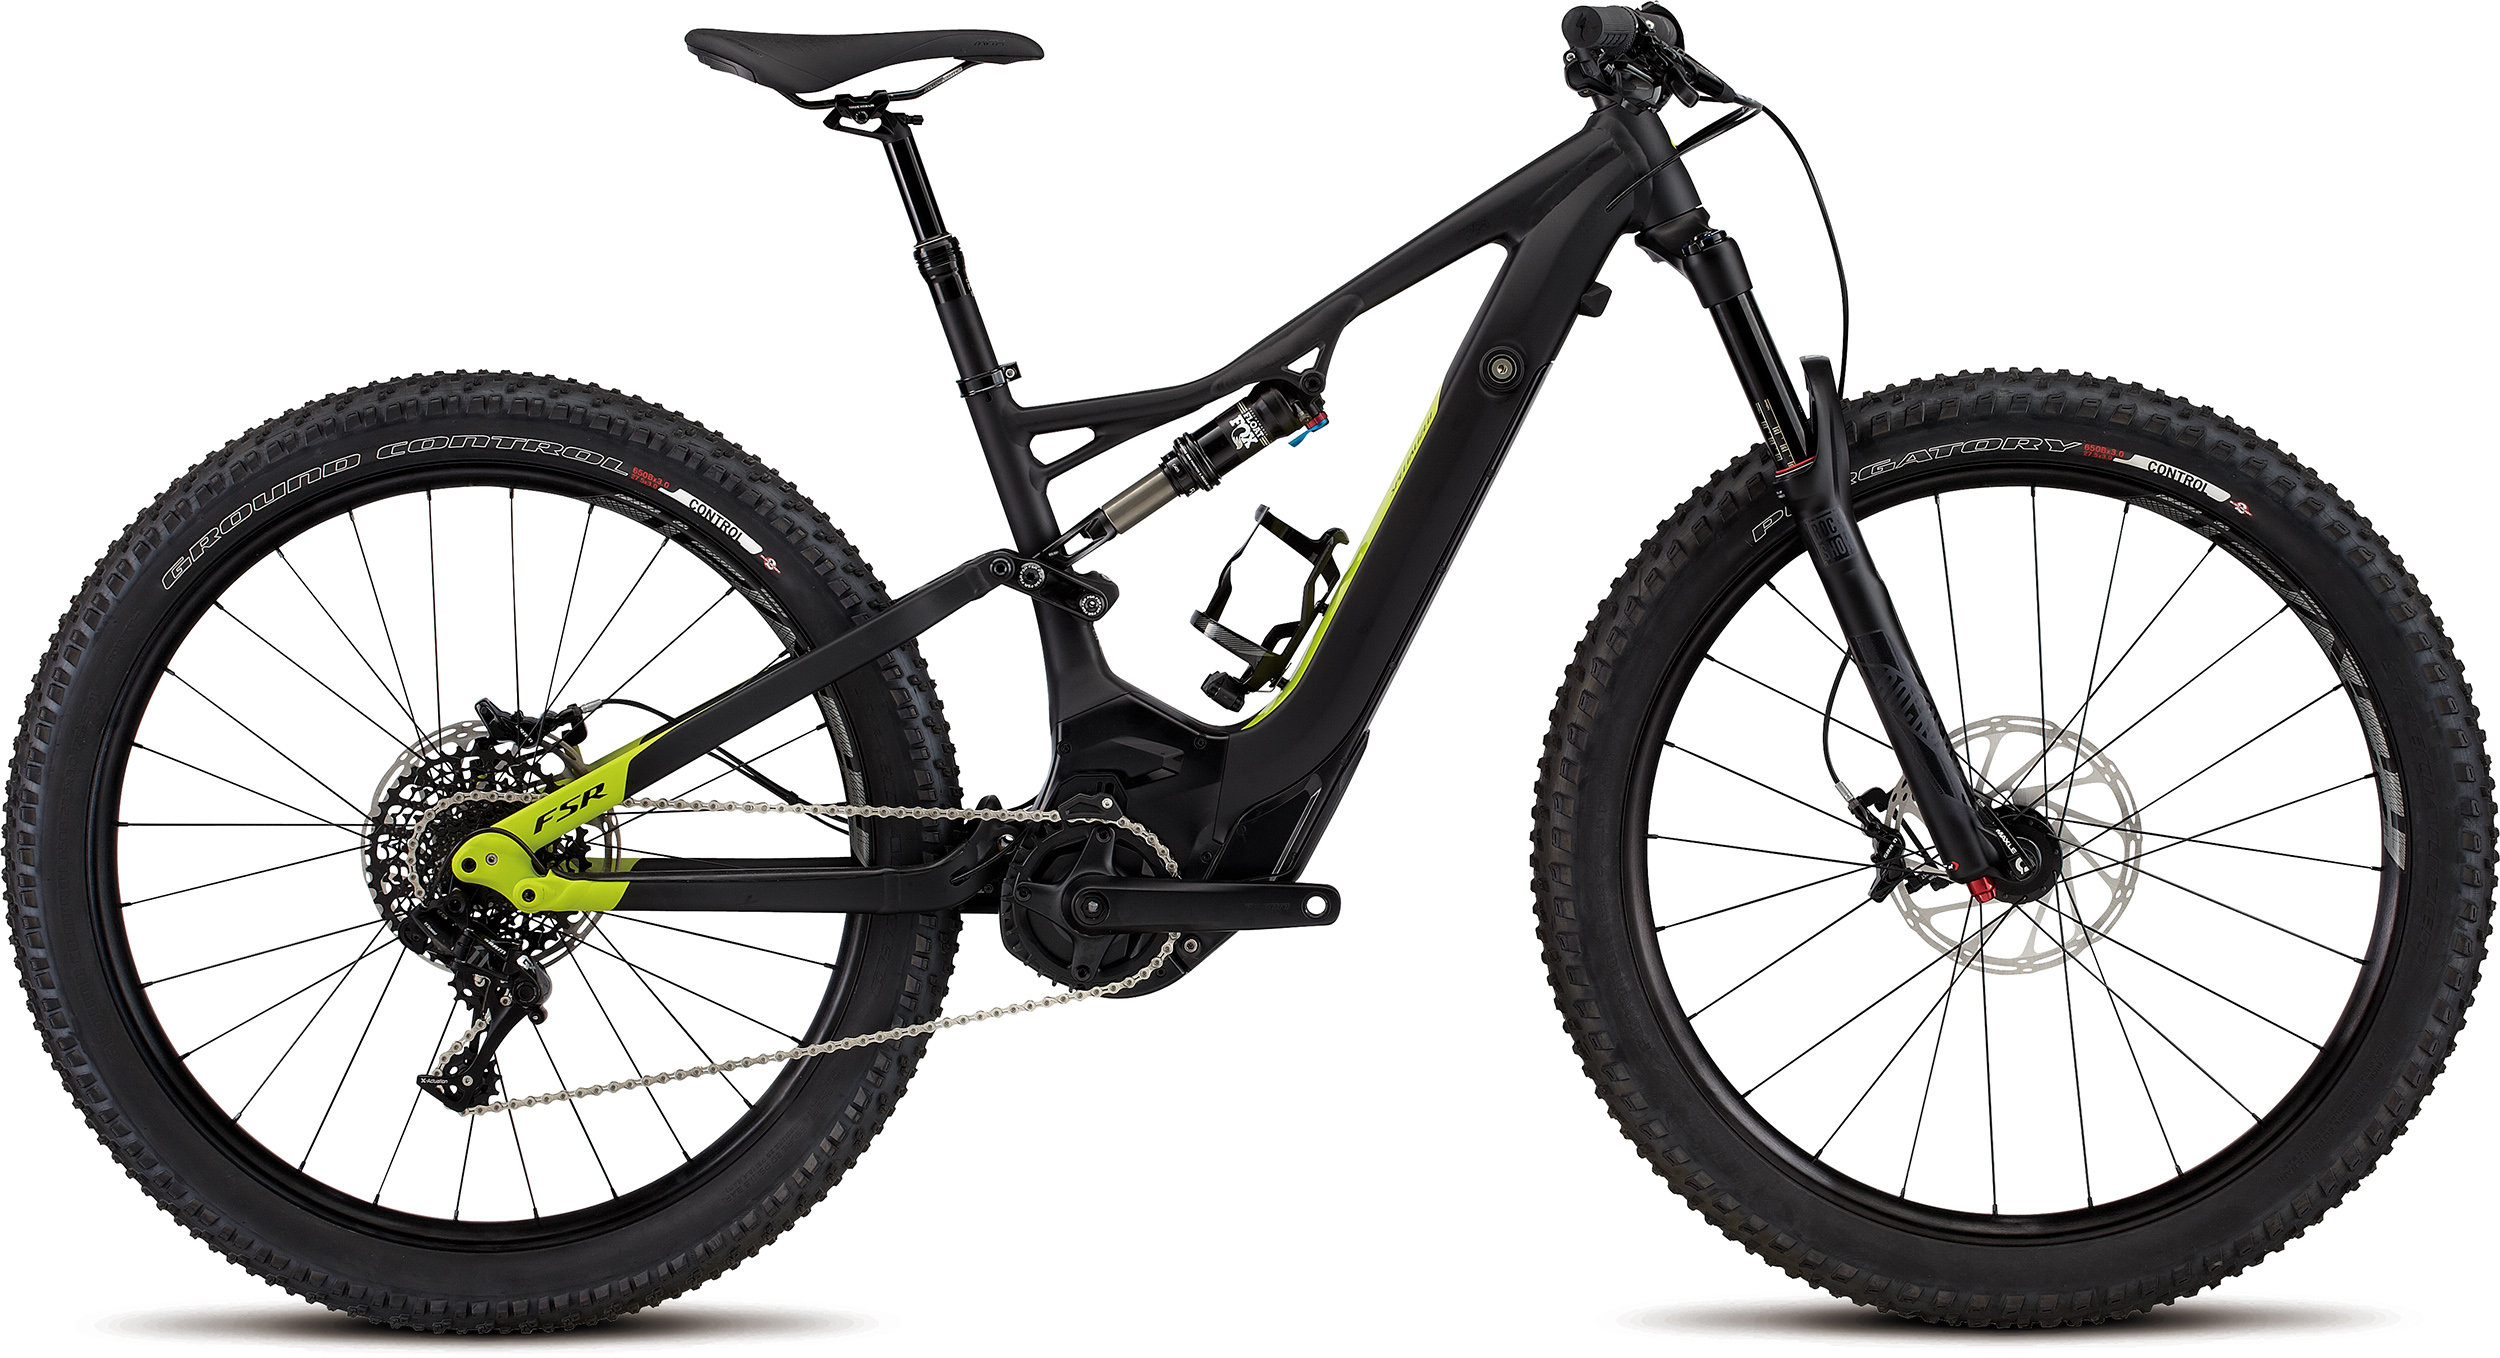 SPECIALIZED LEVO WMN FSR COMP 6FATTIE CE TARBLK/HYP L - Bike Zone